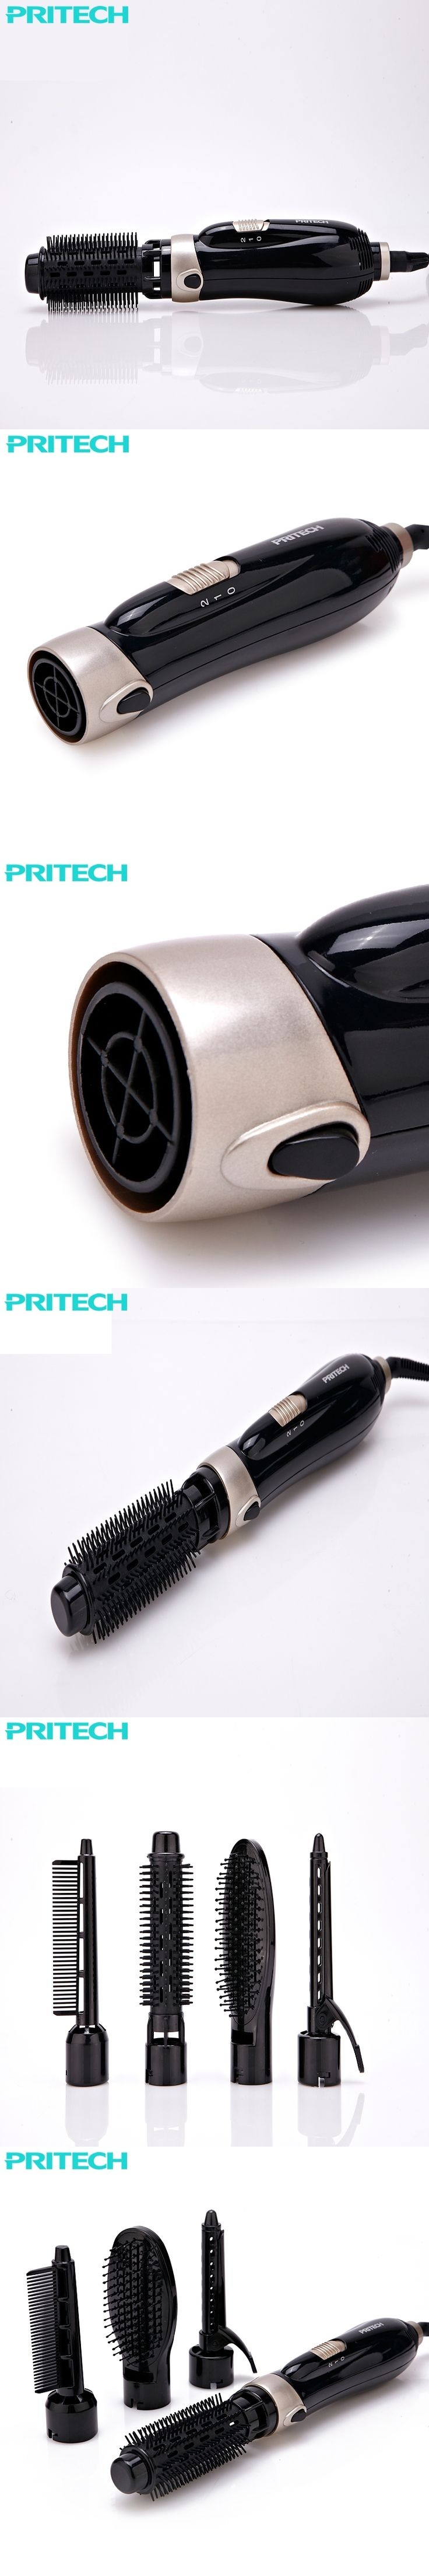 Pritech 4 in 1 Women Styling Tools Set Hair Diffuser For Professional Salon Hair Dryers  Curler Straightener combs #HS-729